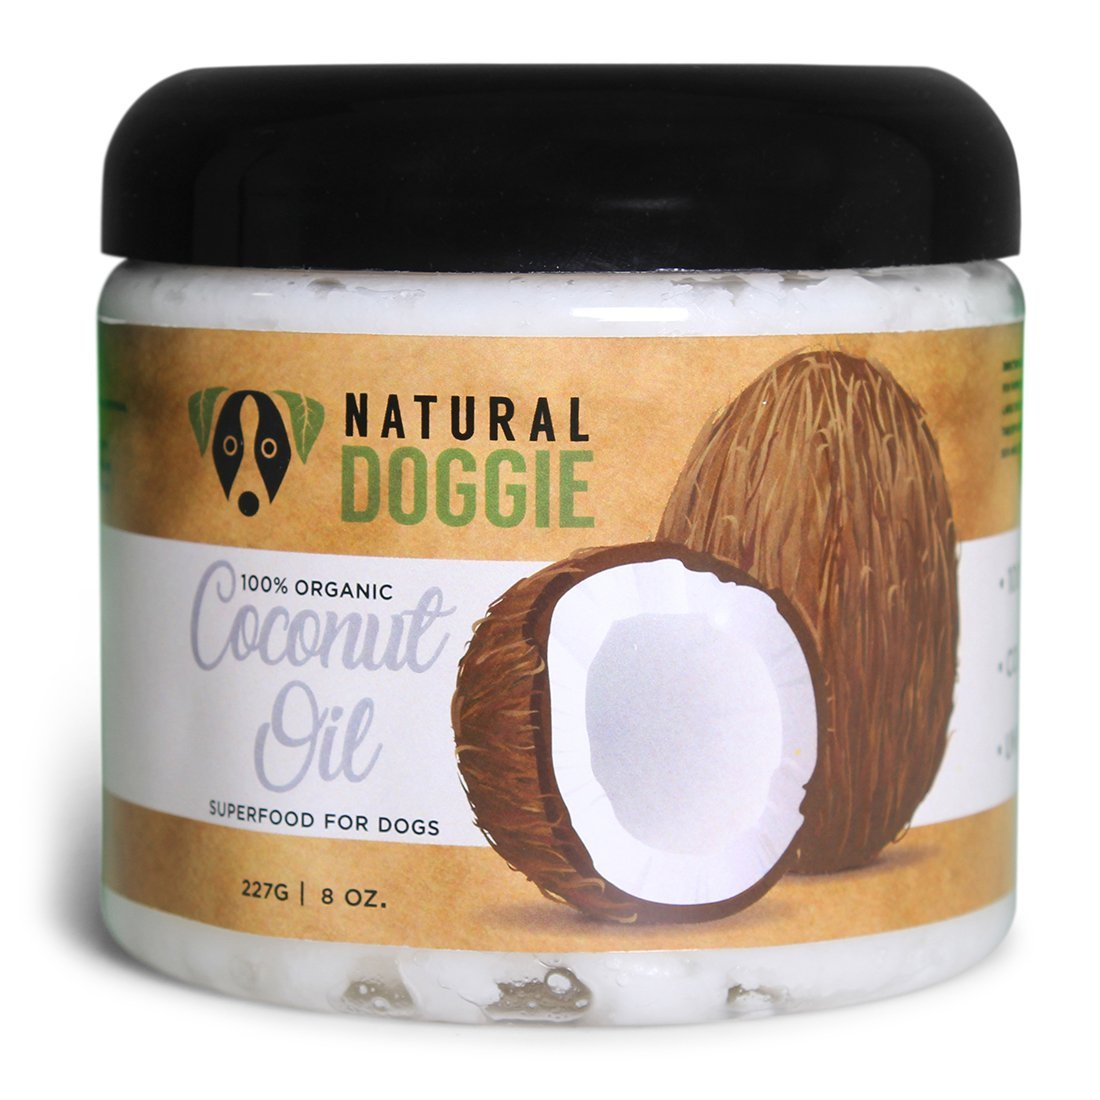 Coconut oil is a great way to help with dog skin allergies